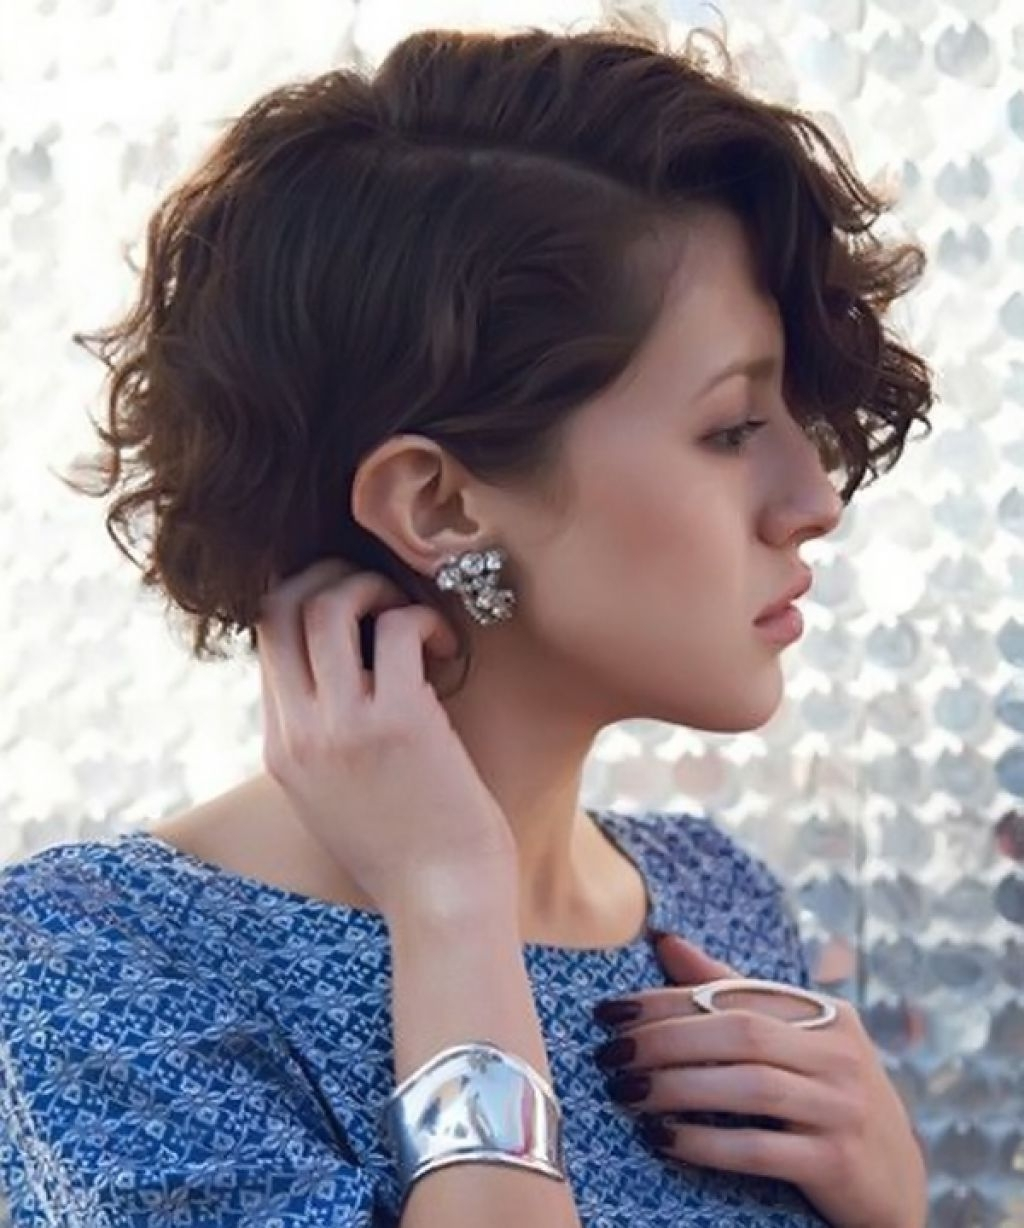 Hairstyles For Heart Shaped Faces Curly Hair This Style Is Curly Intended For Most Recently Pixie Hairstyles For Heart Shaped Faces (View 9 of 15)